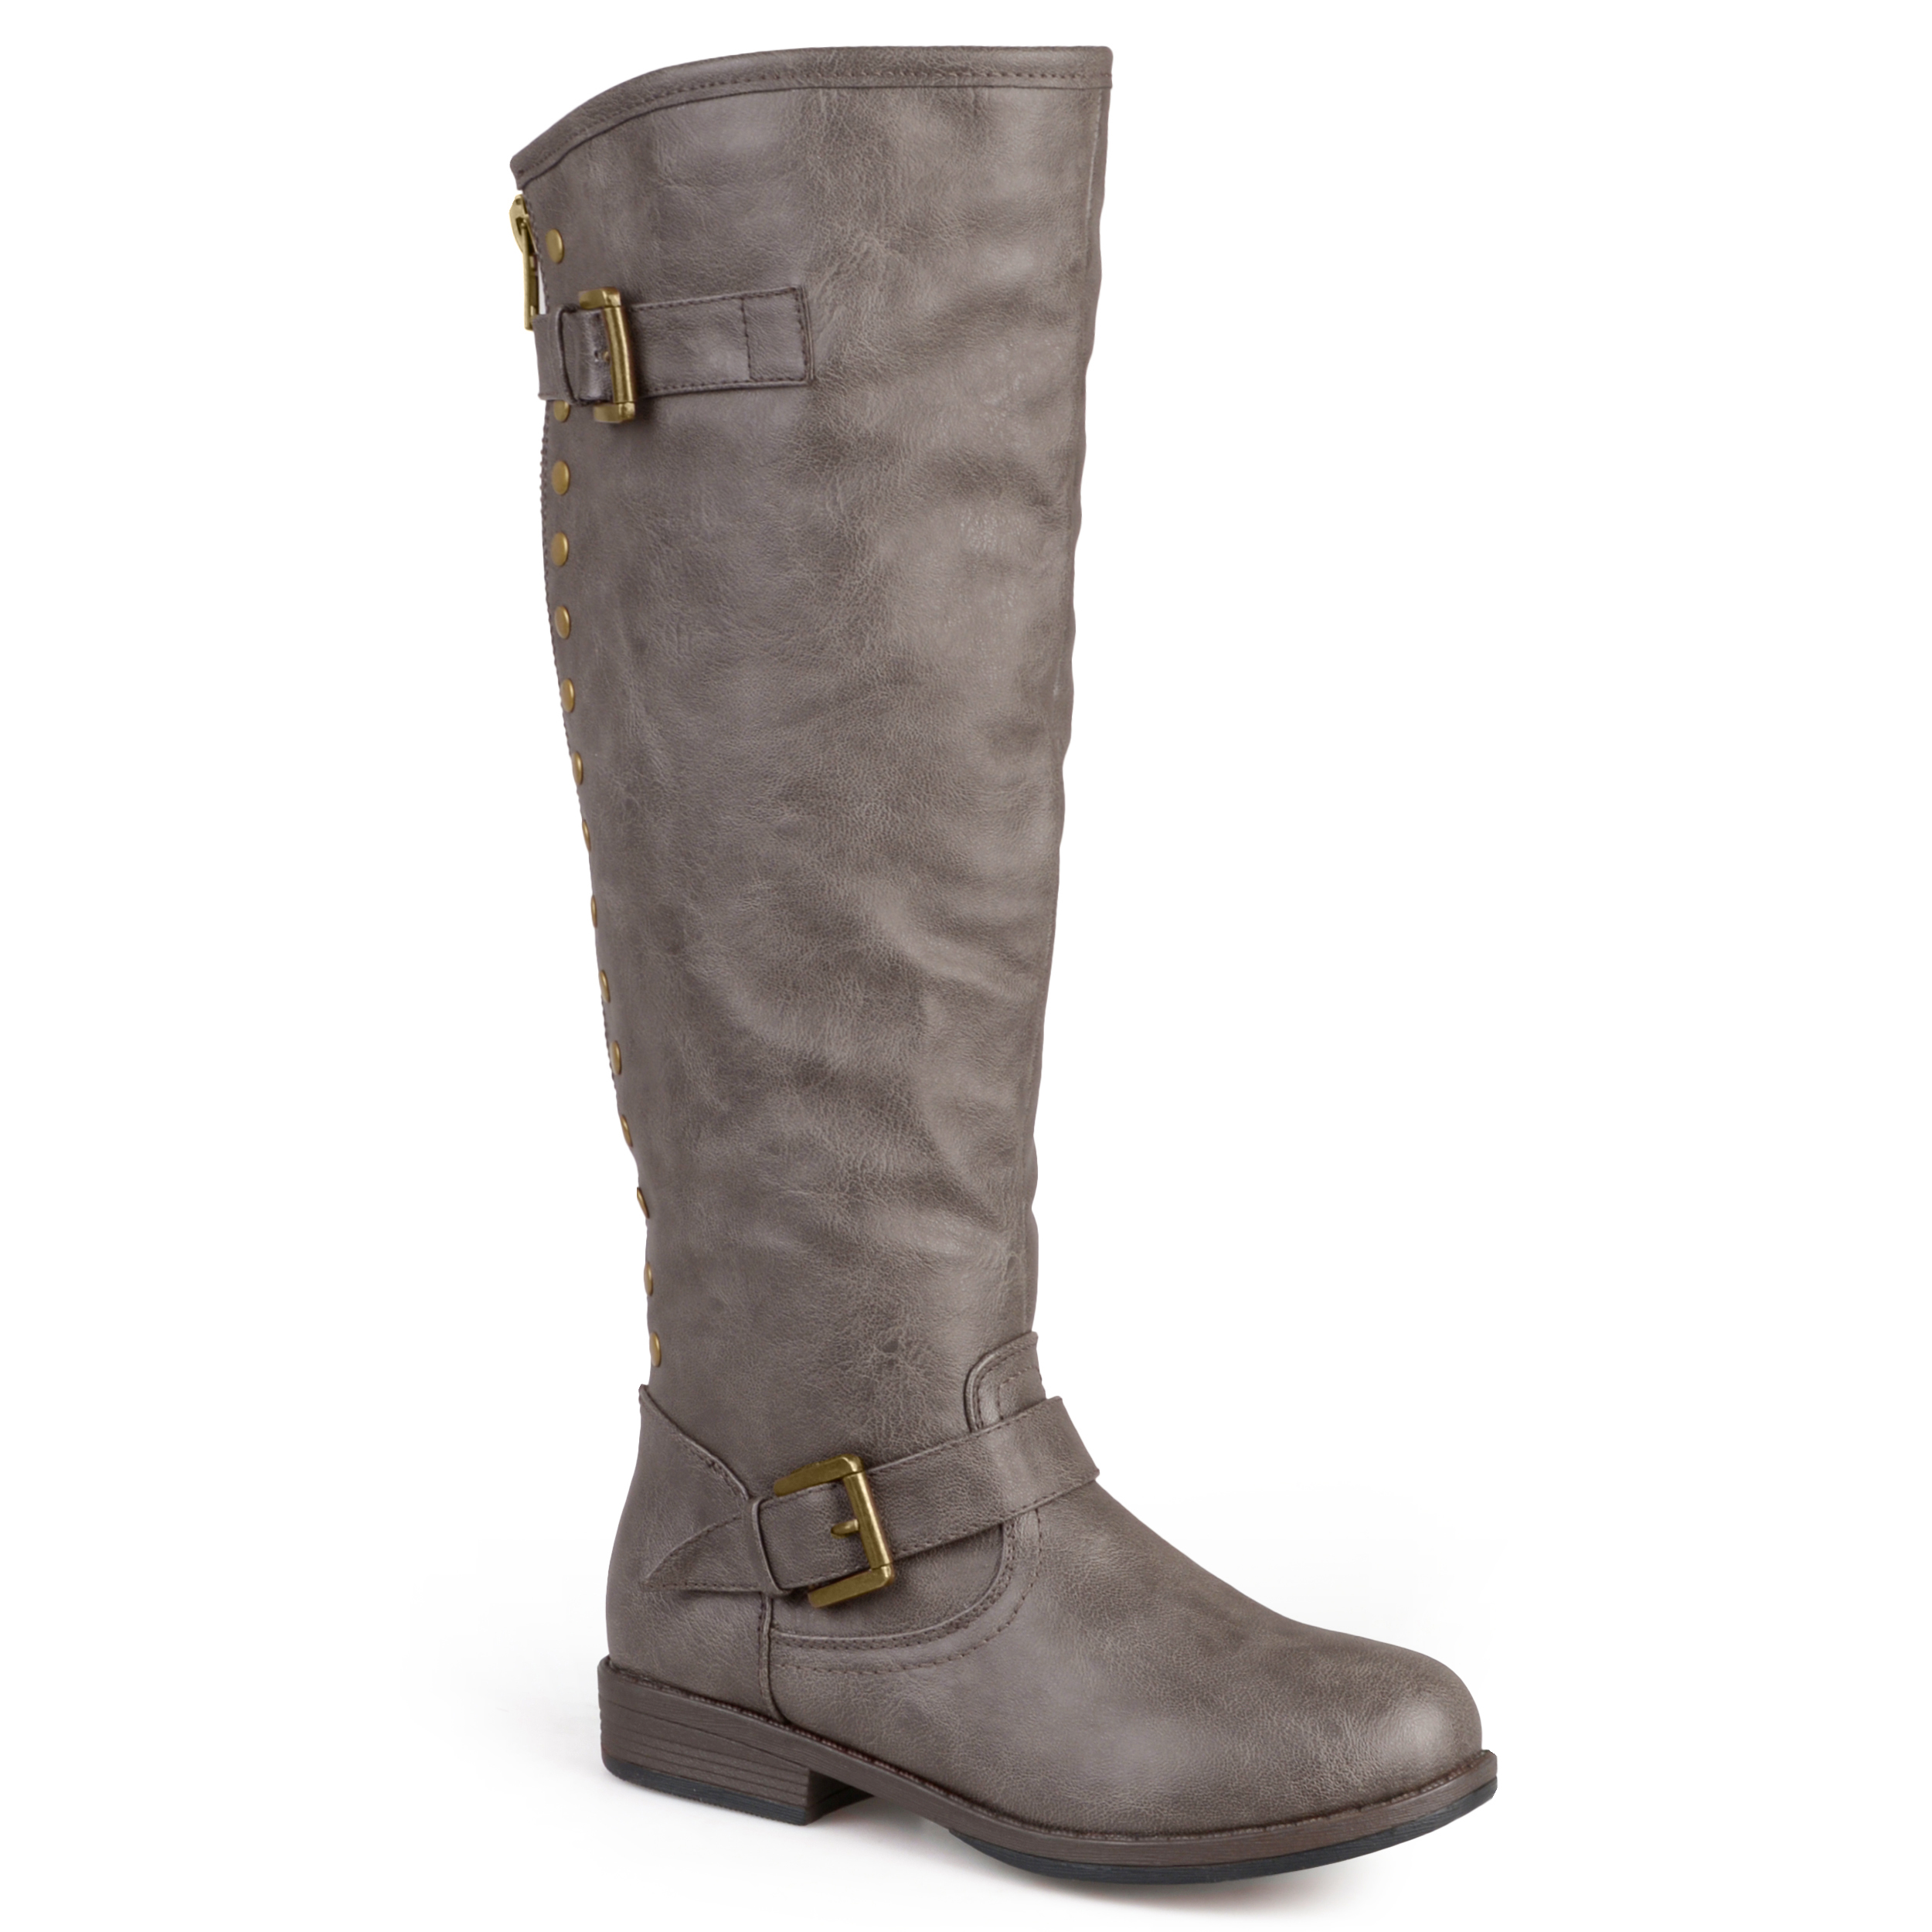 Journee Collection Womens Faux Leather Studded Wide Calf Boots w/ Faux Fur Lining at Sears.com